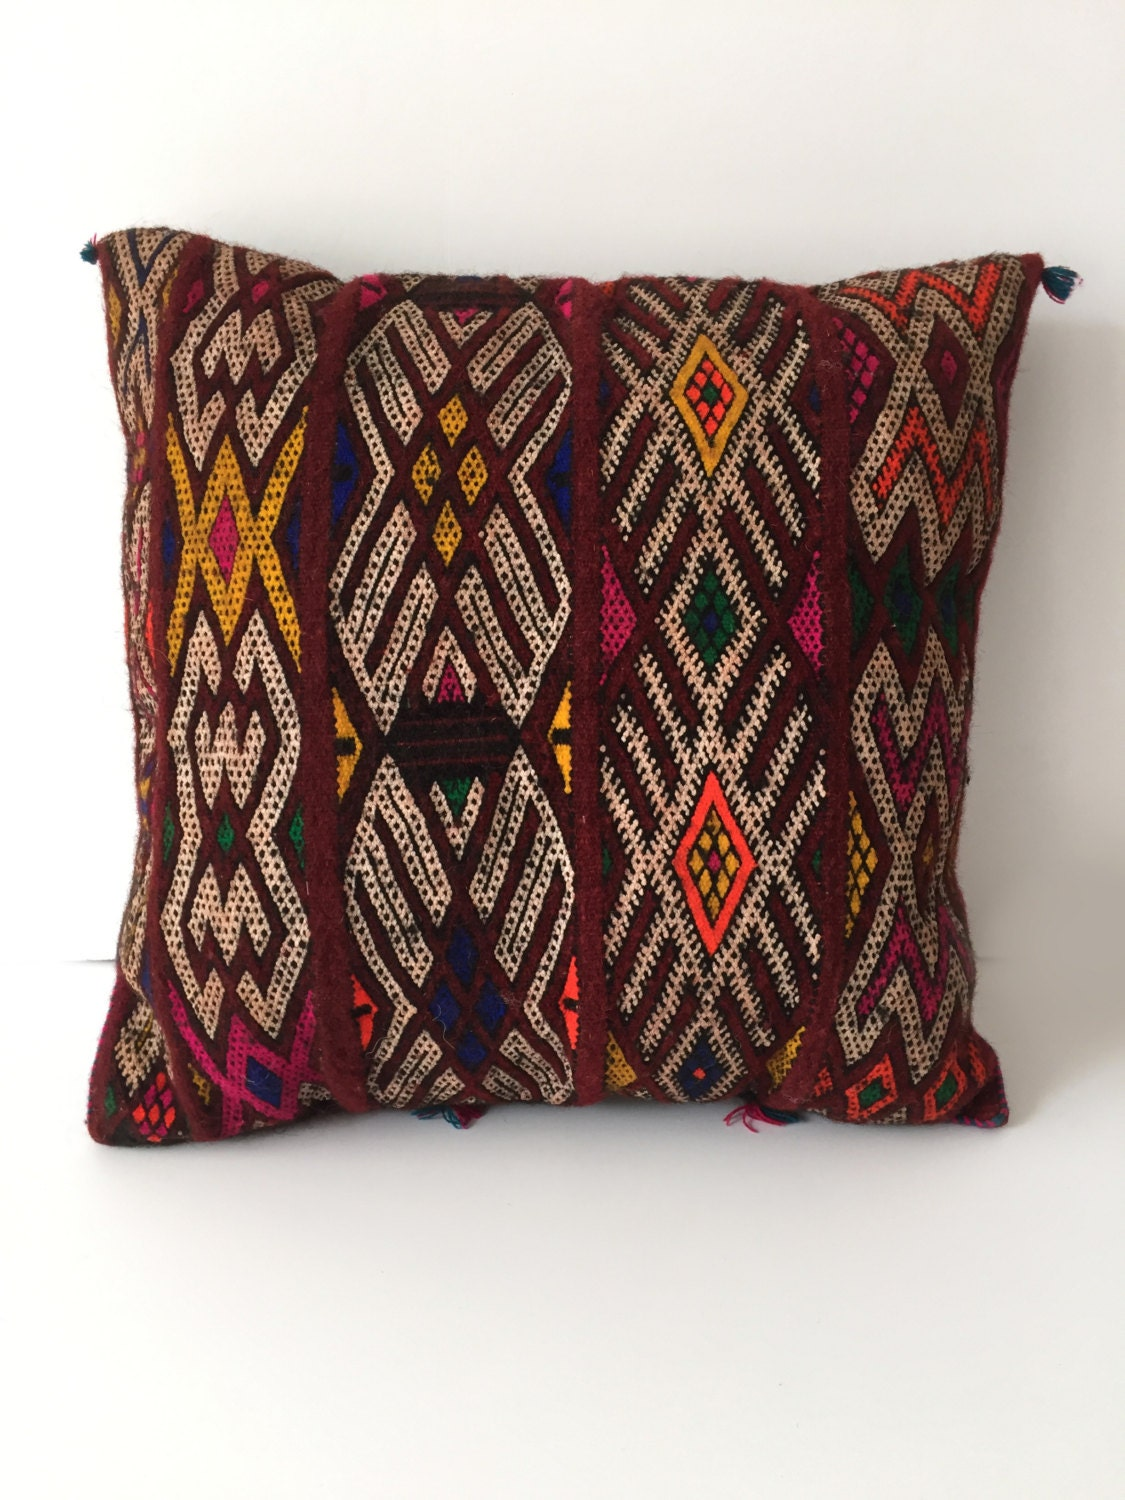 Throw Pillows Malum : Moroccan pillow Vintage Berber pillow Square Red pillow